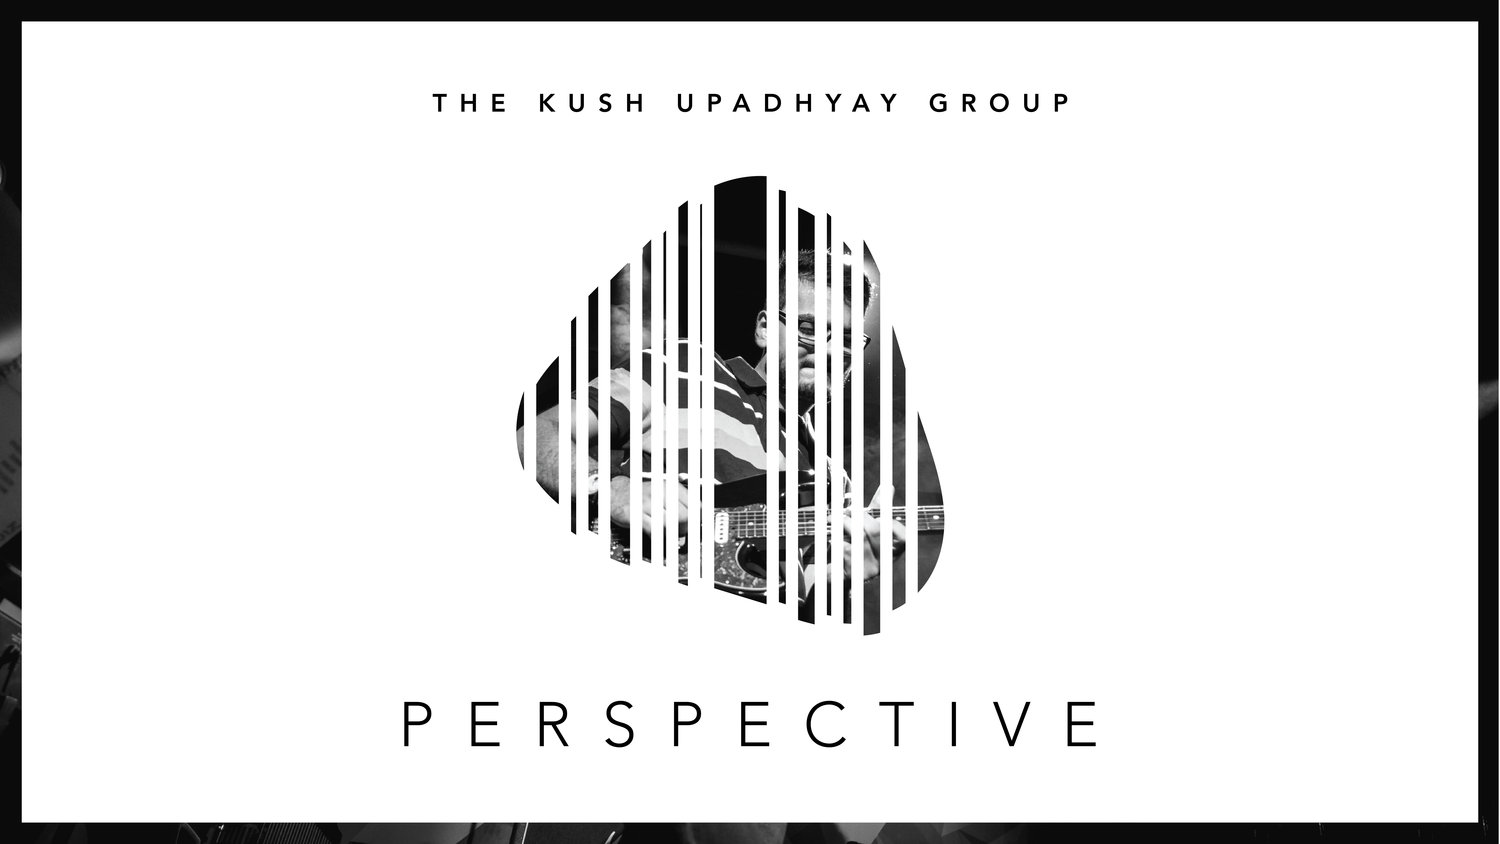 Perspective (2016) - Five track album featuring Anurag Naidu on keyboards, Nathan Thomas on bass and Varoon Aiyer on drums. This album was featured on RollingStone's list of